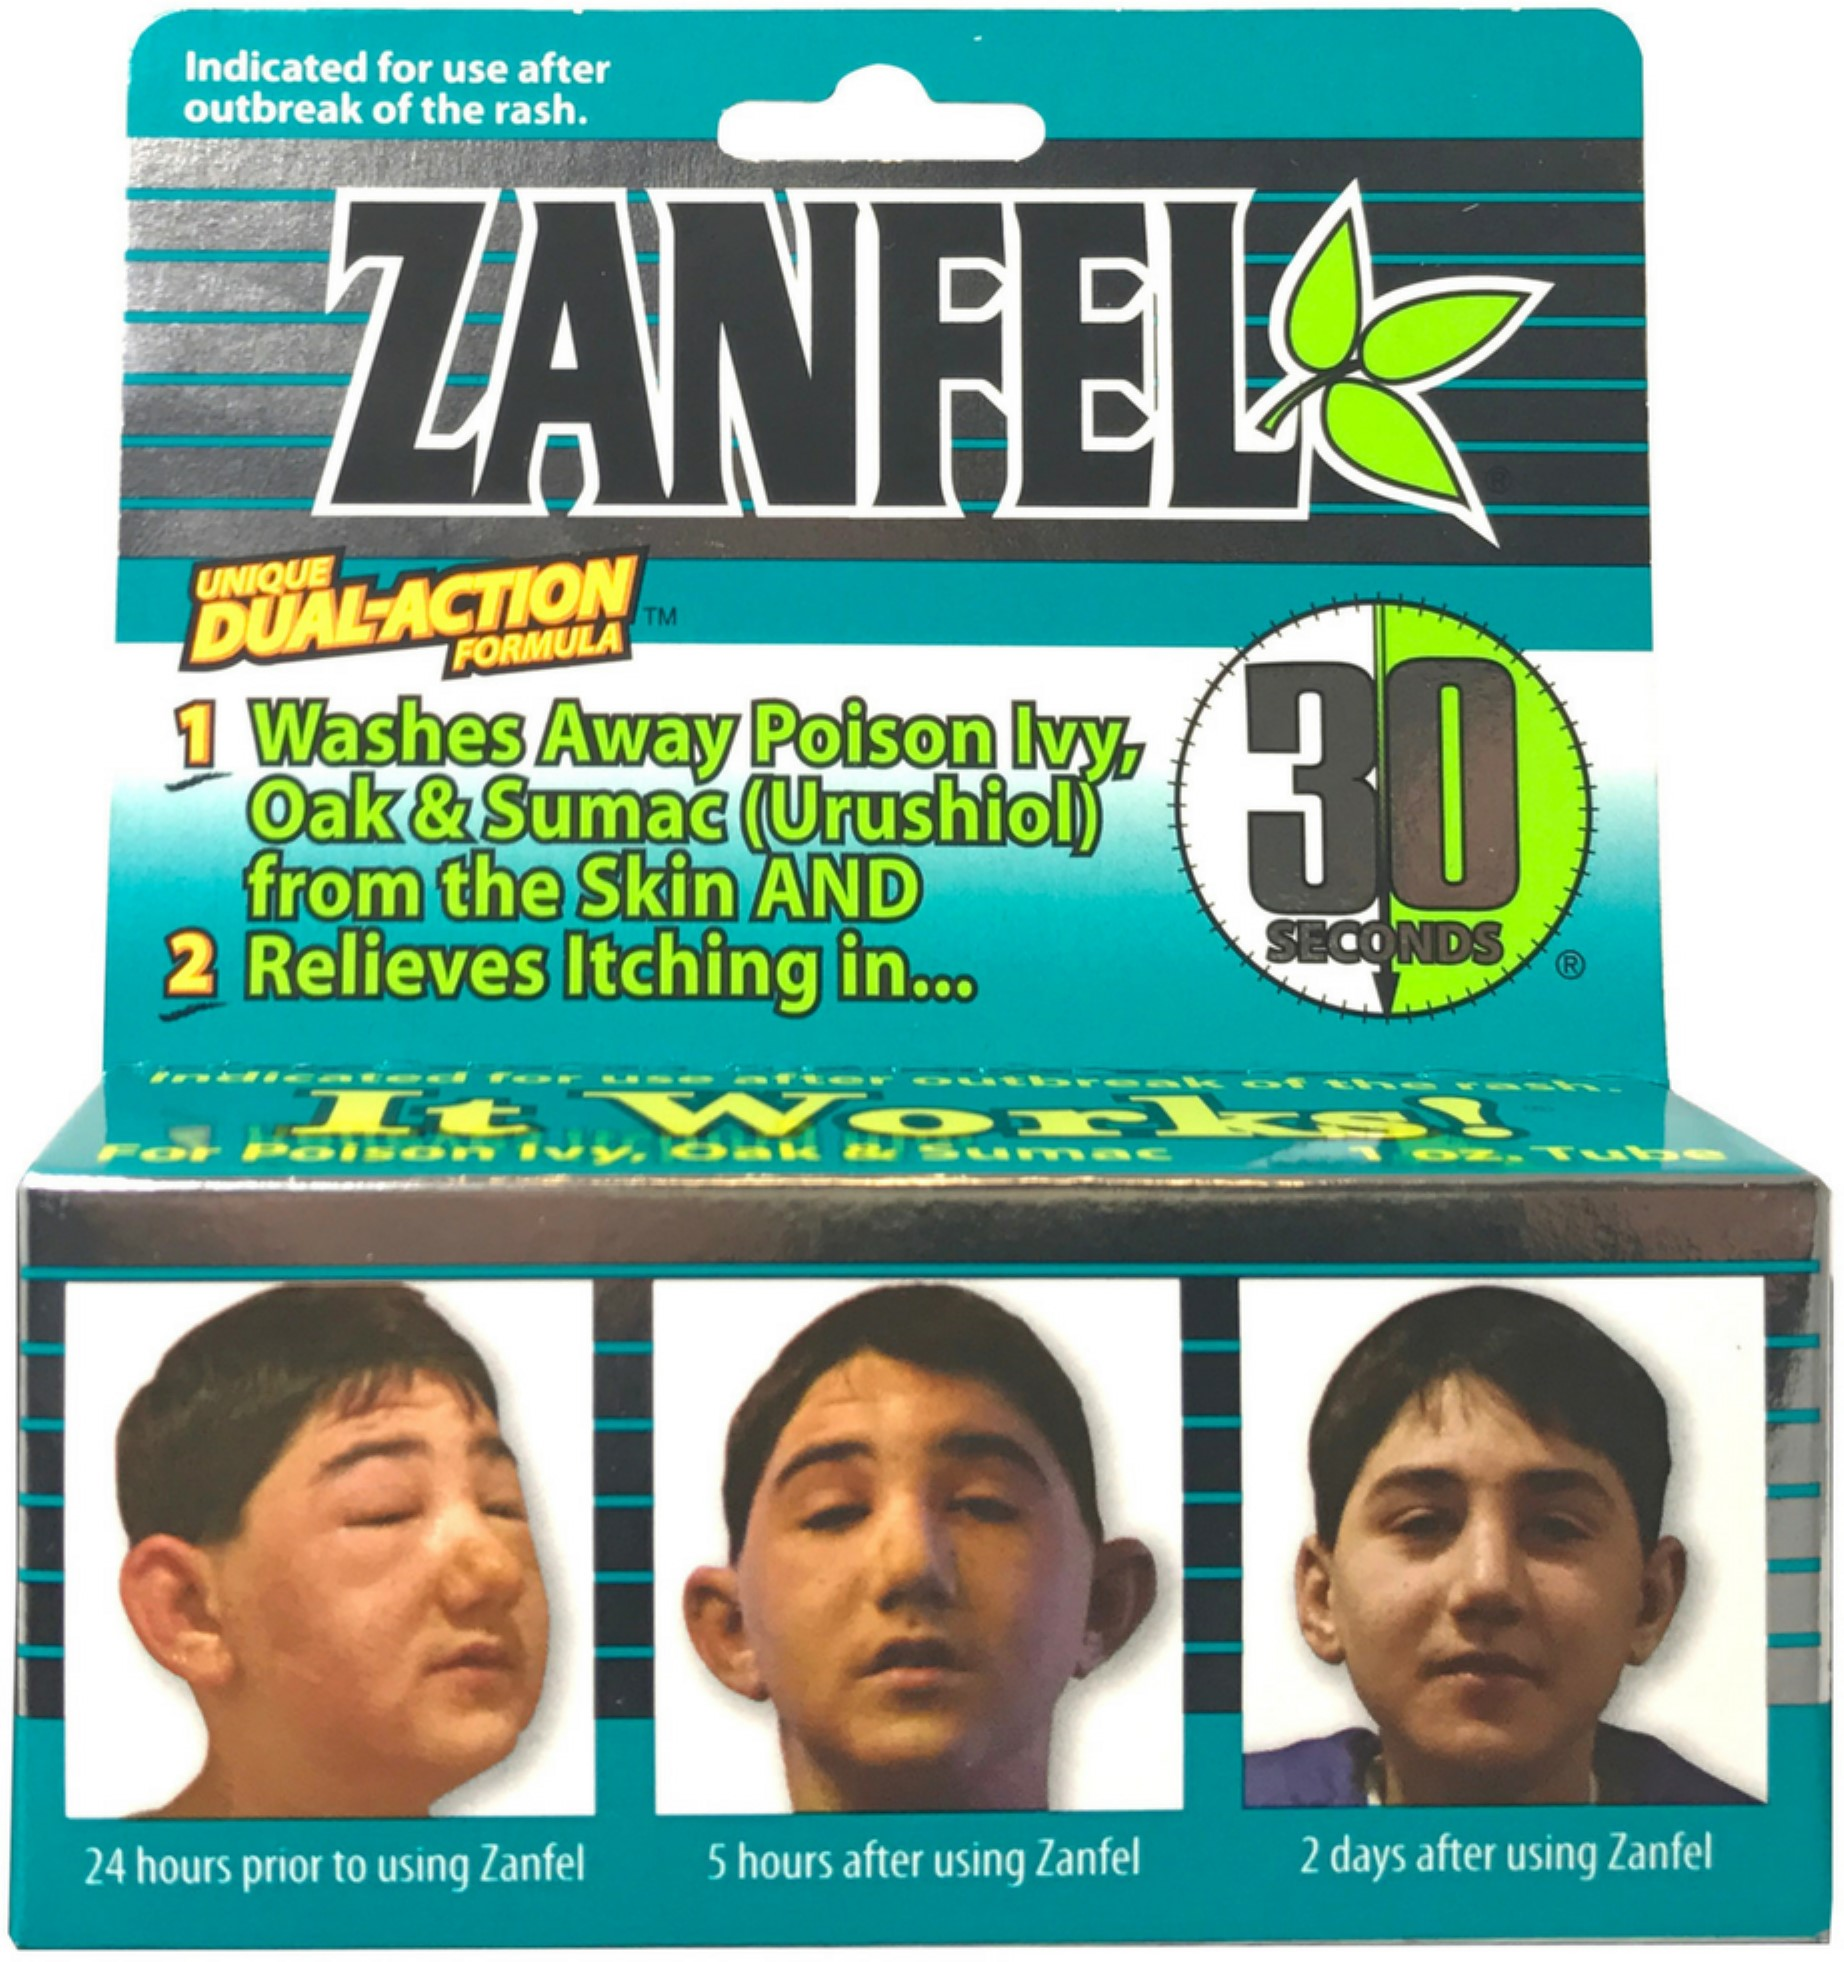 4 Pack - Zanfel Wash For Poison Ivy, Oak & Sumac (Urushiol) 1 oz